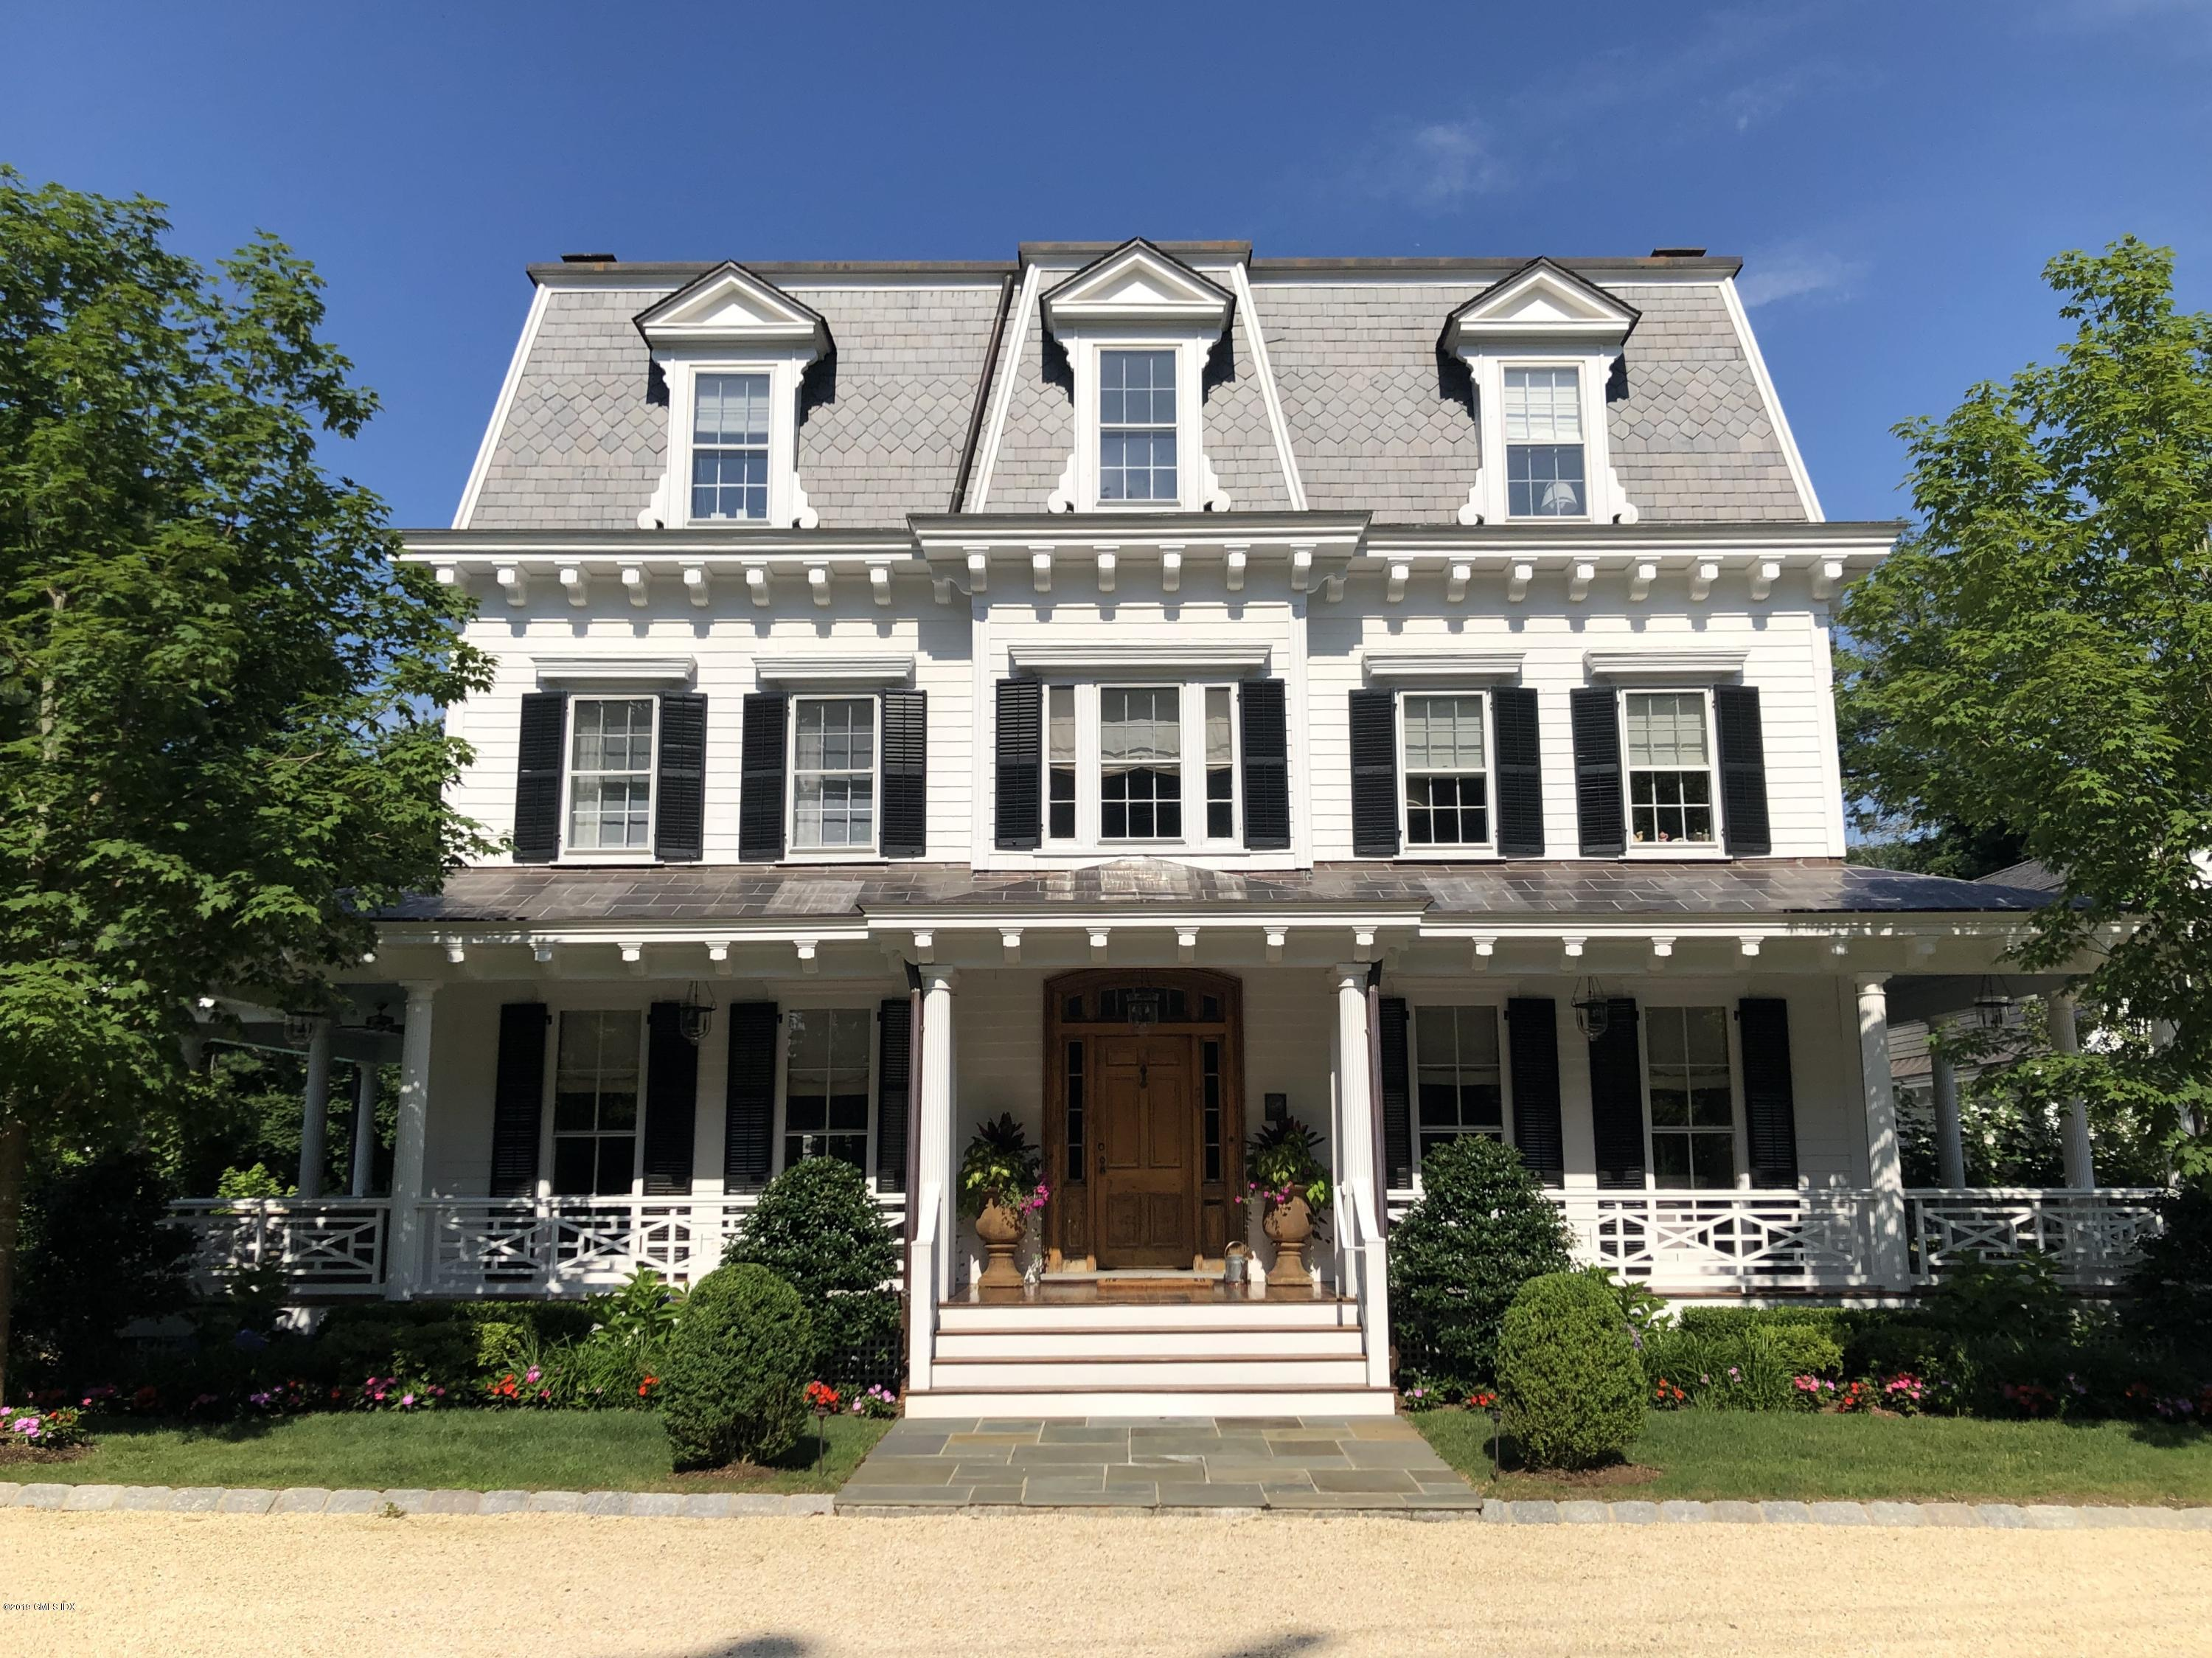 42 Old Church Road - Greenwich, Connecticut